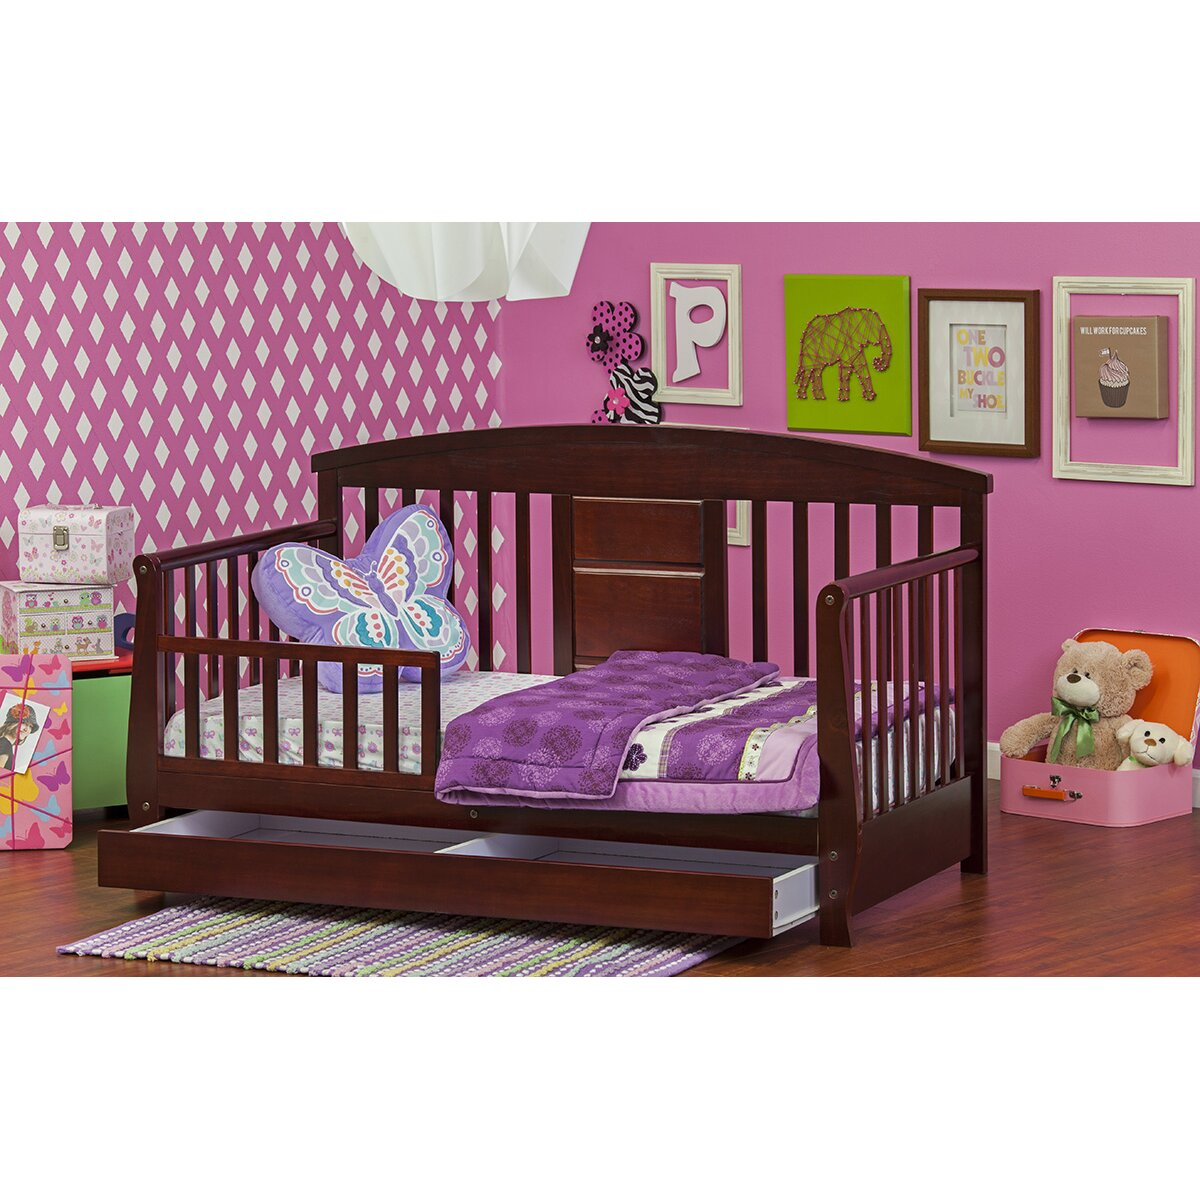 Dream On Me Deluxe Convertible Toddler Bed with Storage ...